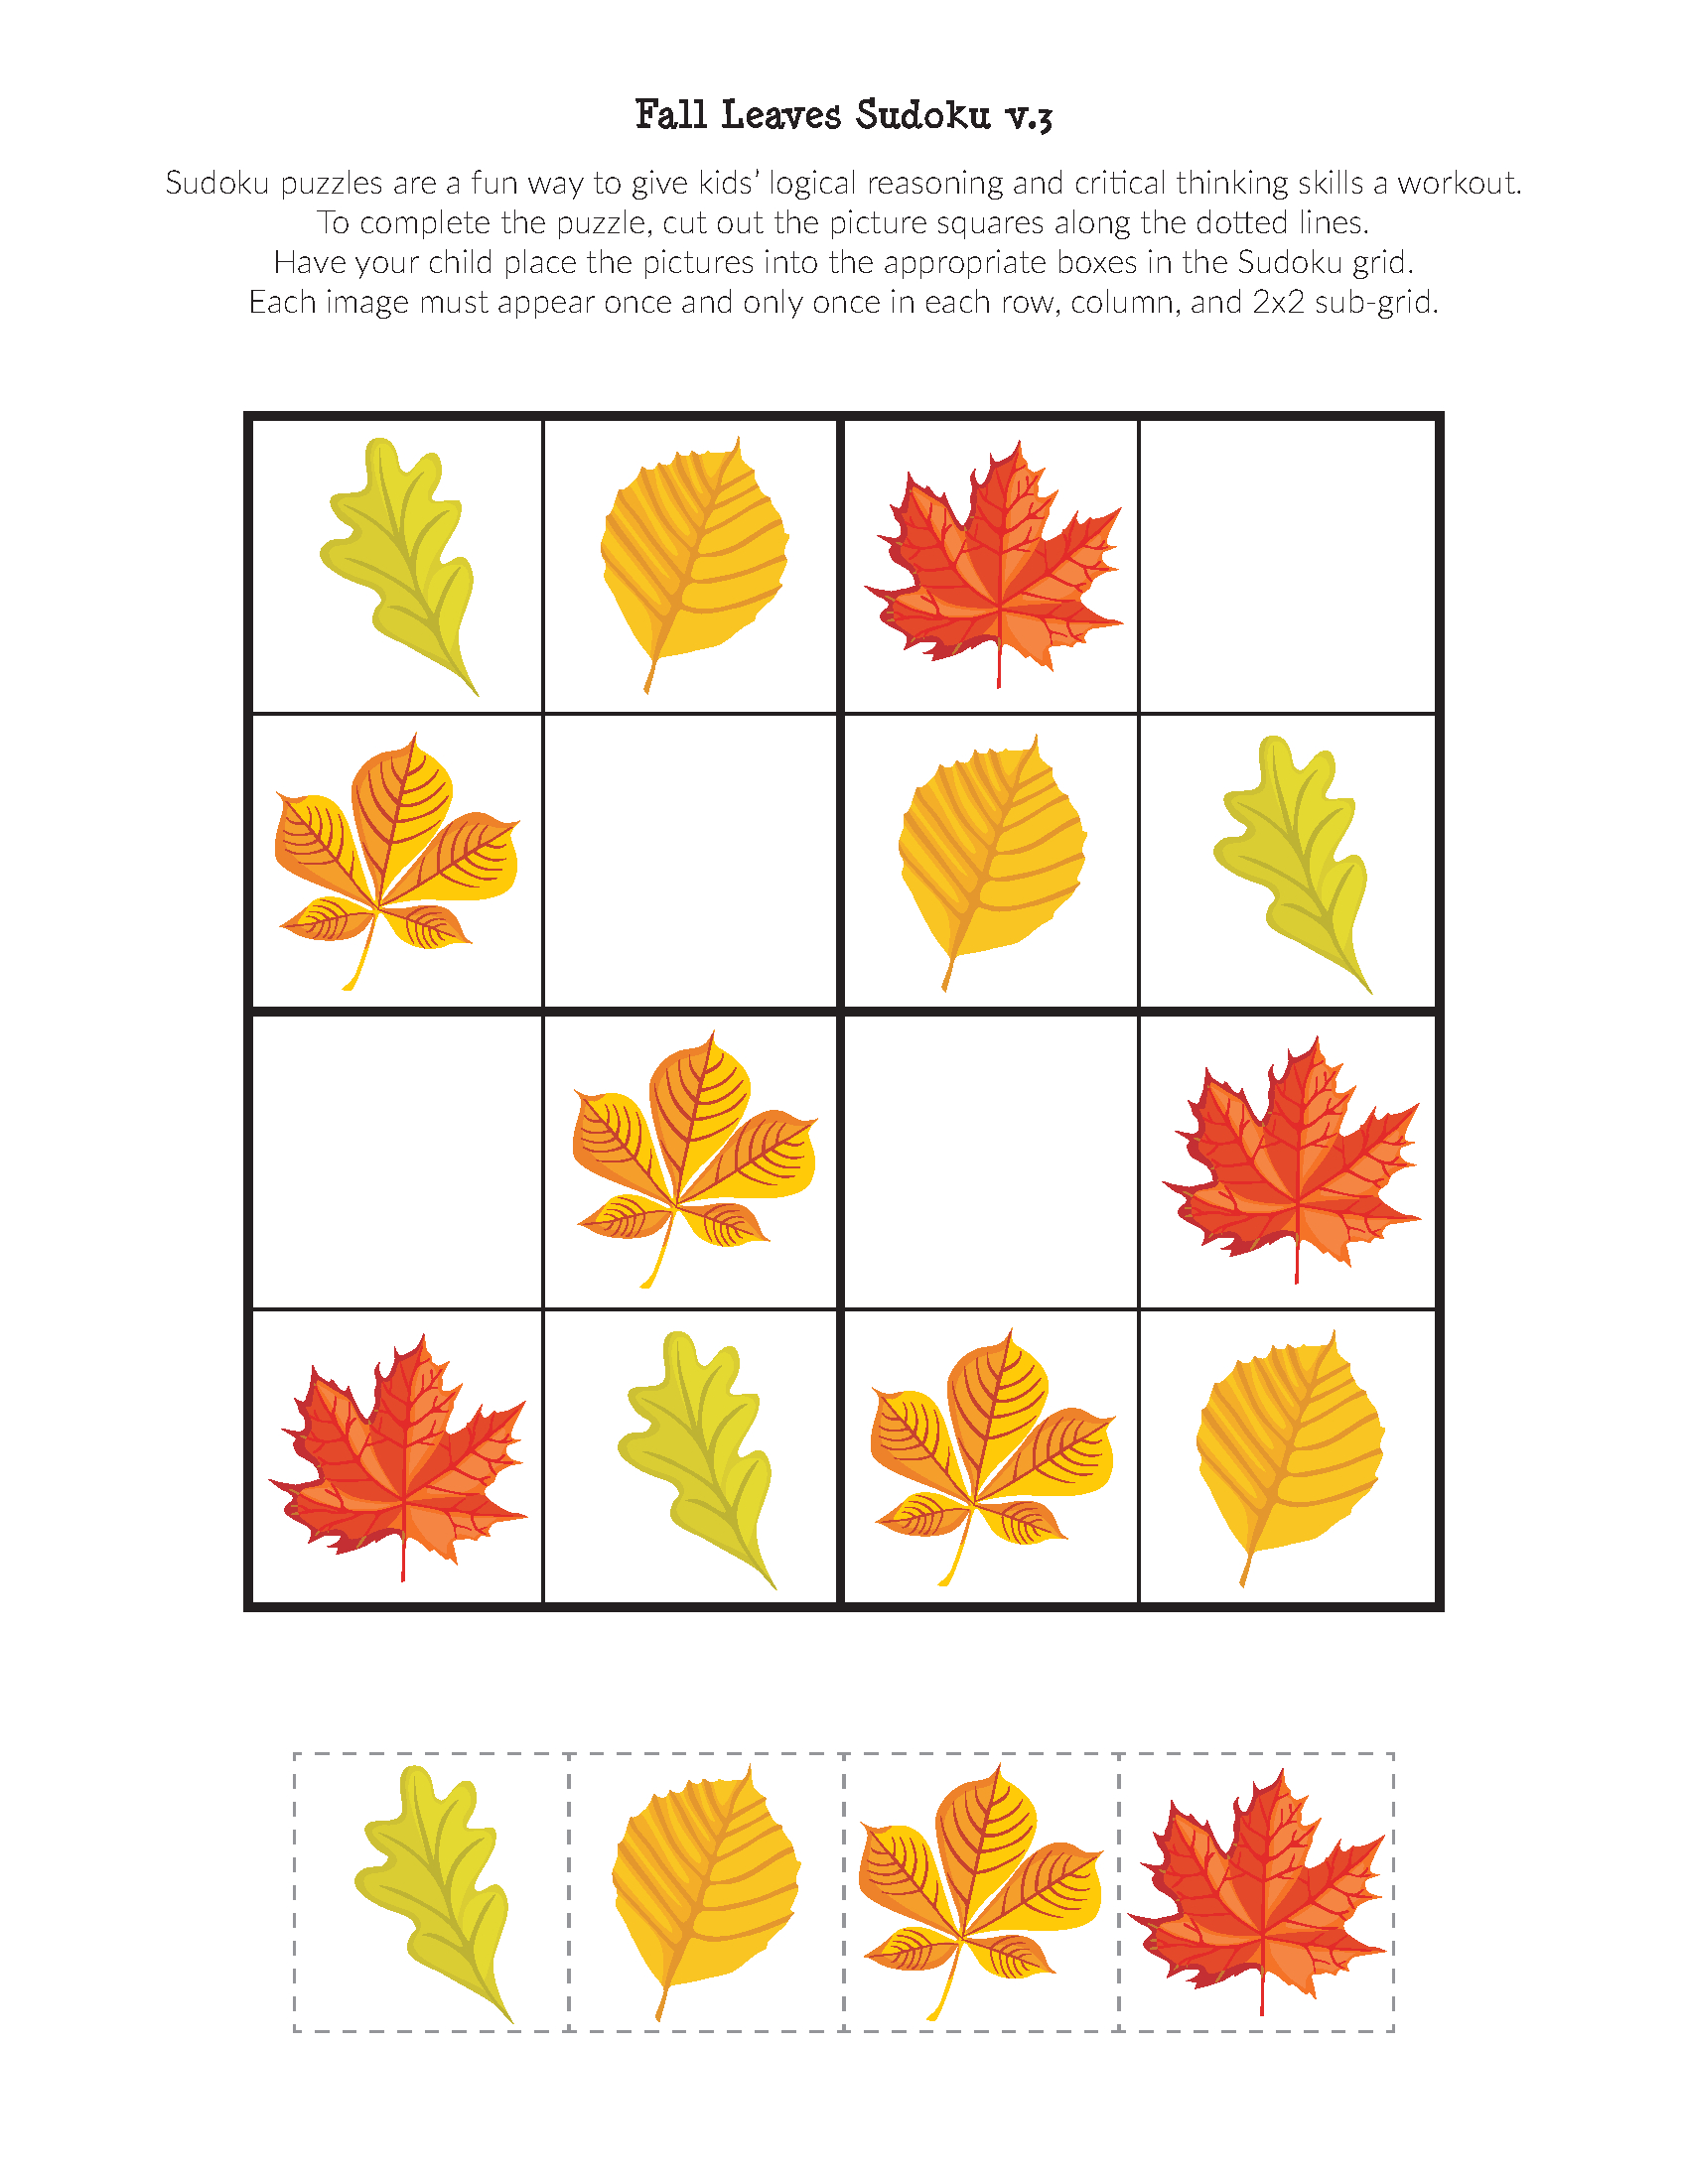 Fall Leaves Sudoku Puzzles - Gift Of Curiosity